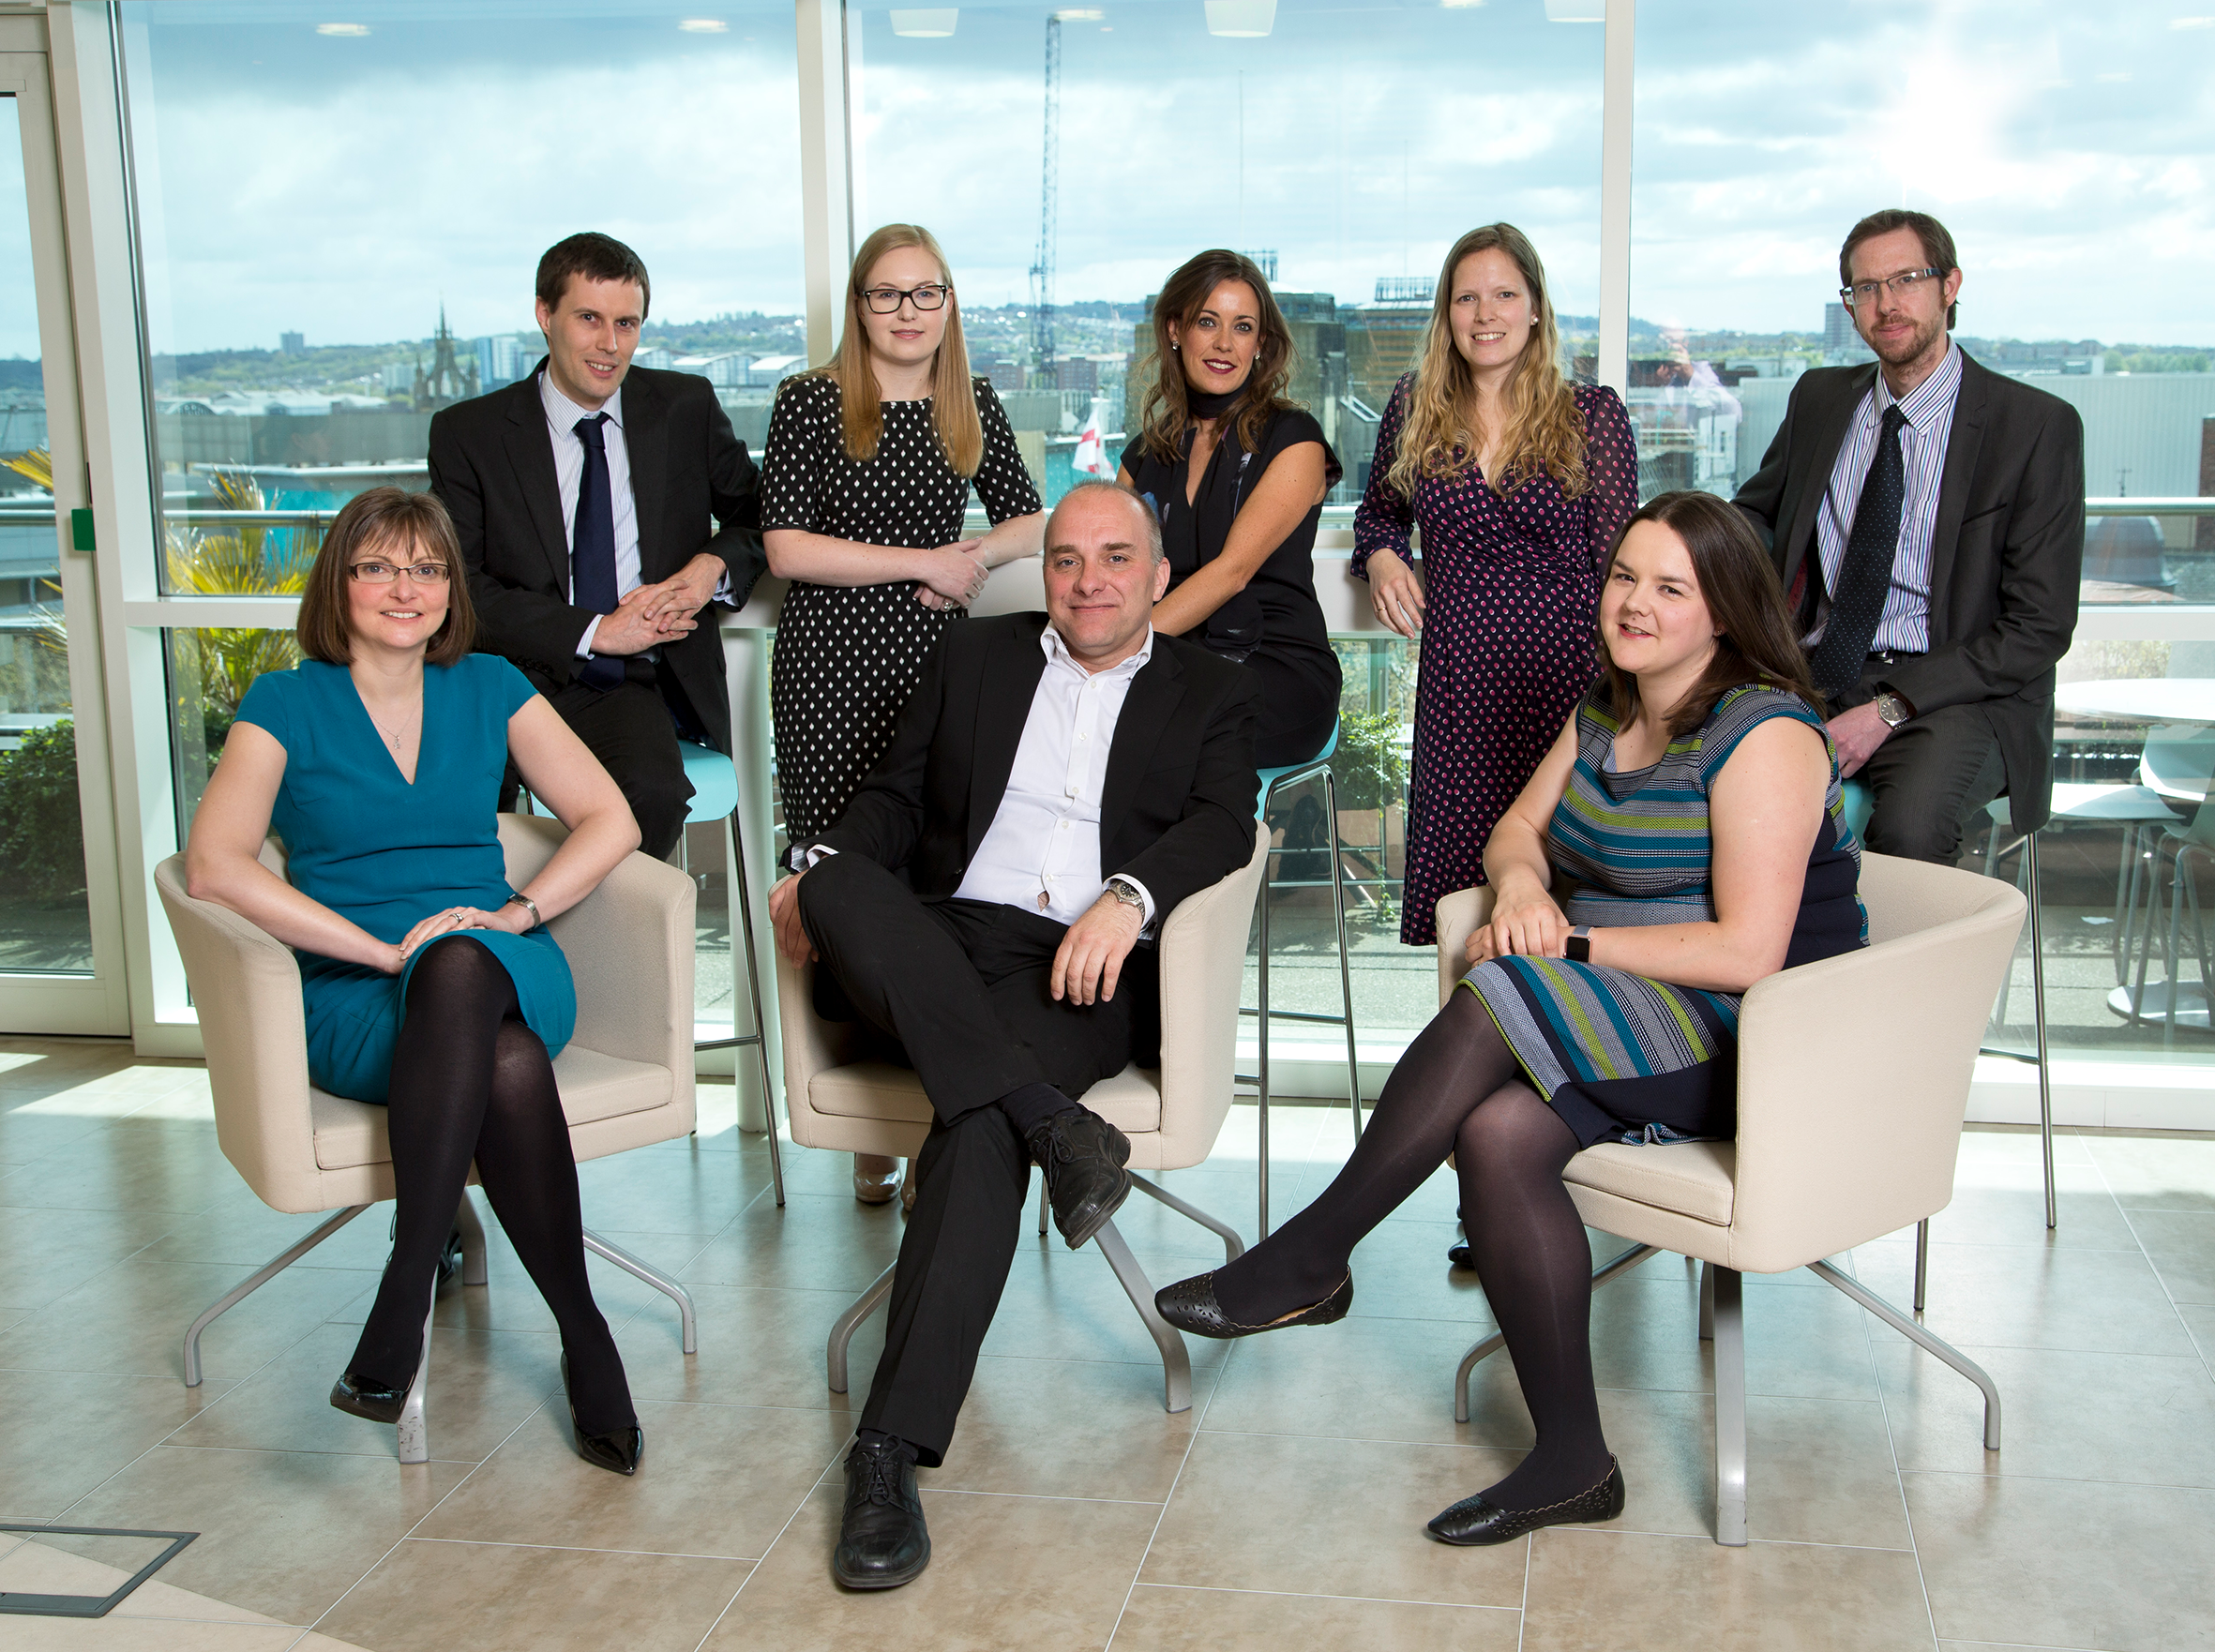 From Left to Right - Joanne Davison, Richard Nixon, Lisa Kelly, Jason Wainwright, Jess Swindells, Stephanie Coulson, Julie Adams and James Armstrong